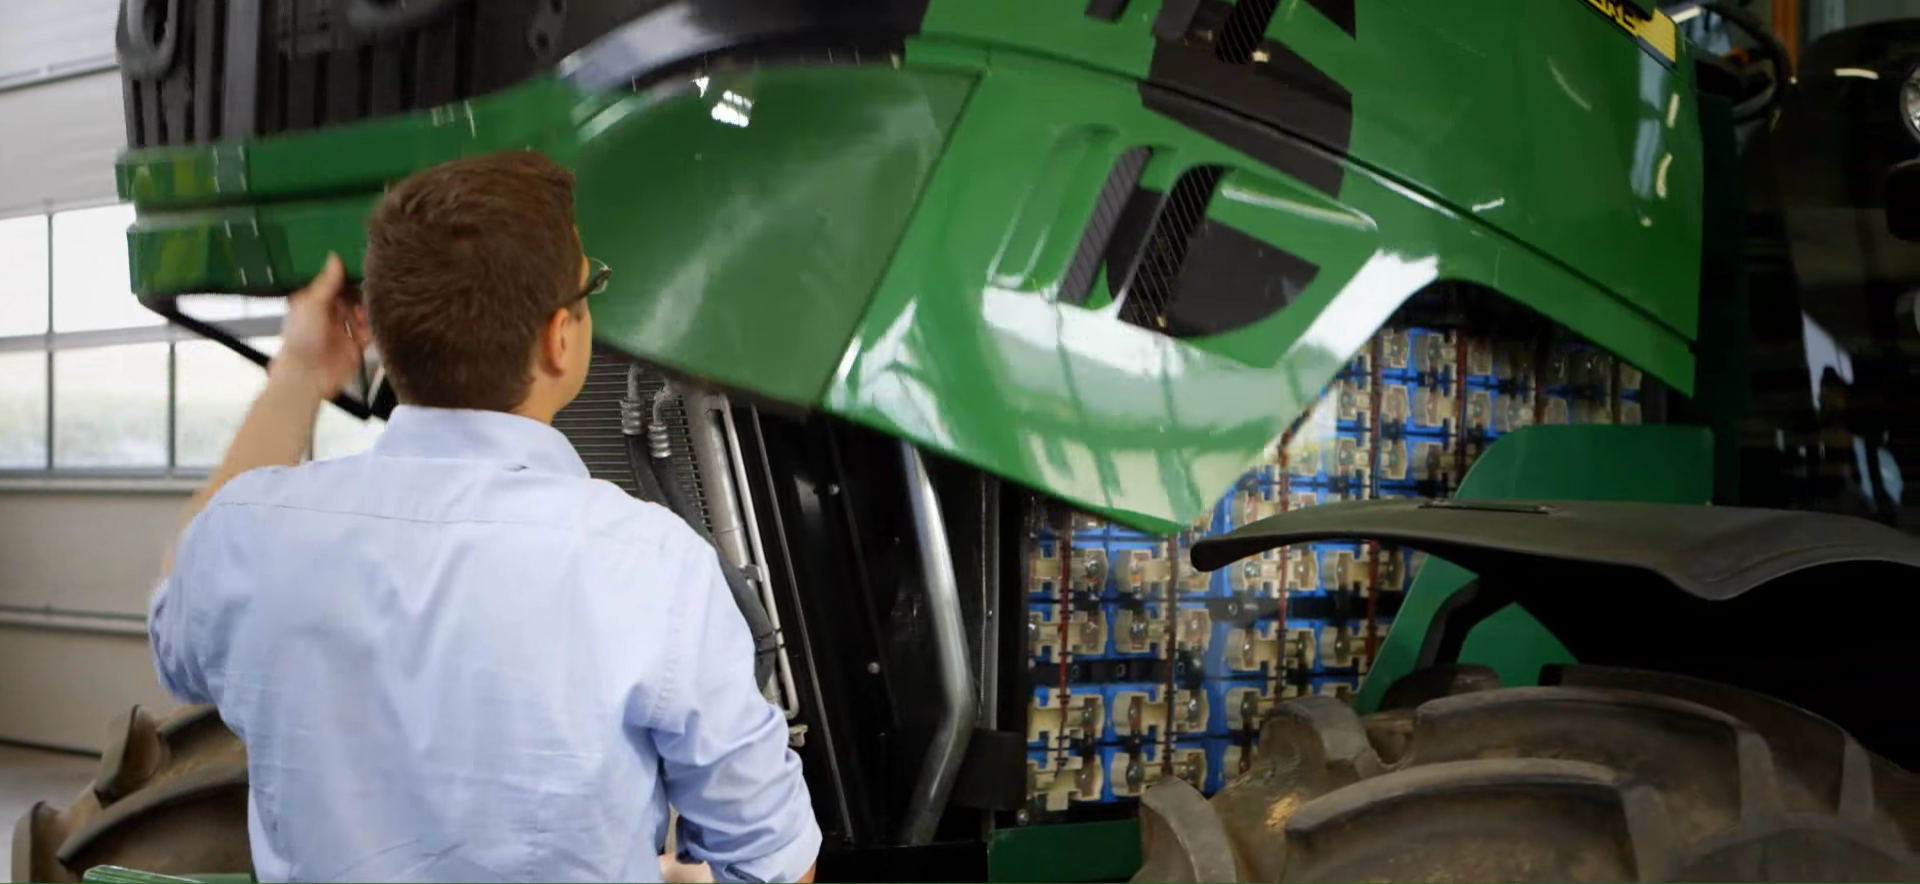 Growing opportunities for electric vehicles on farm